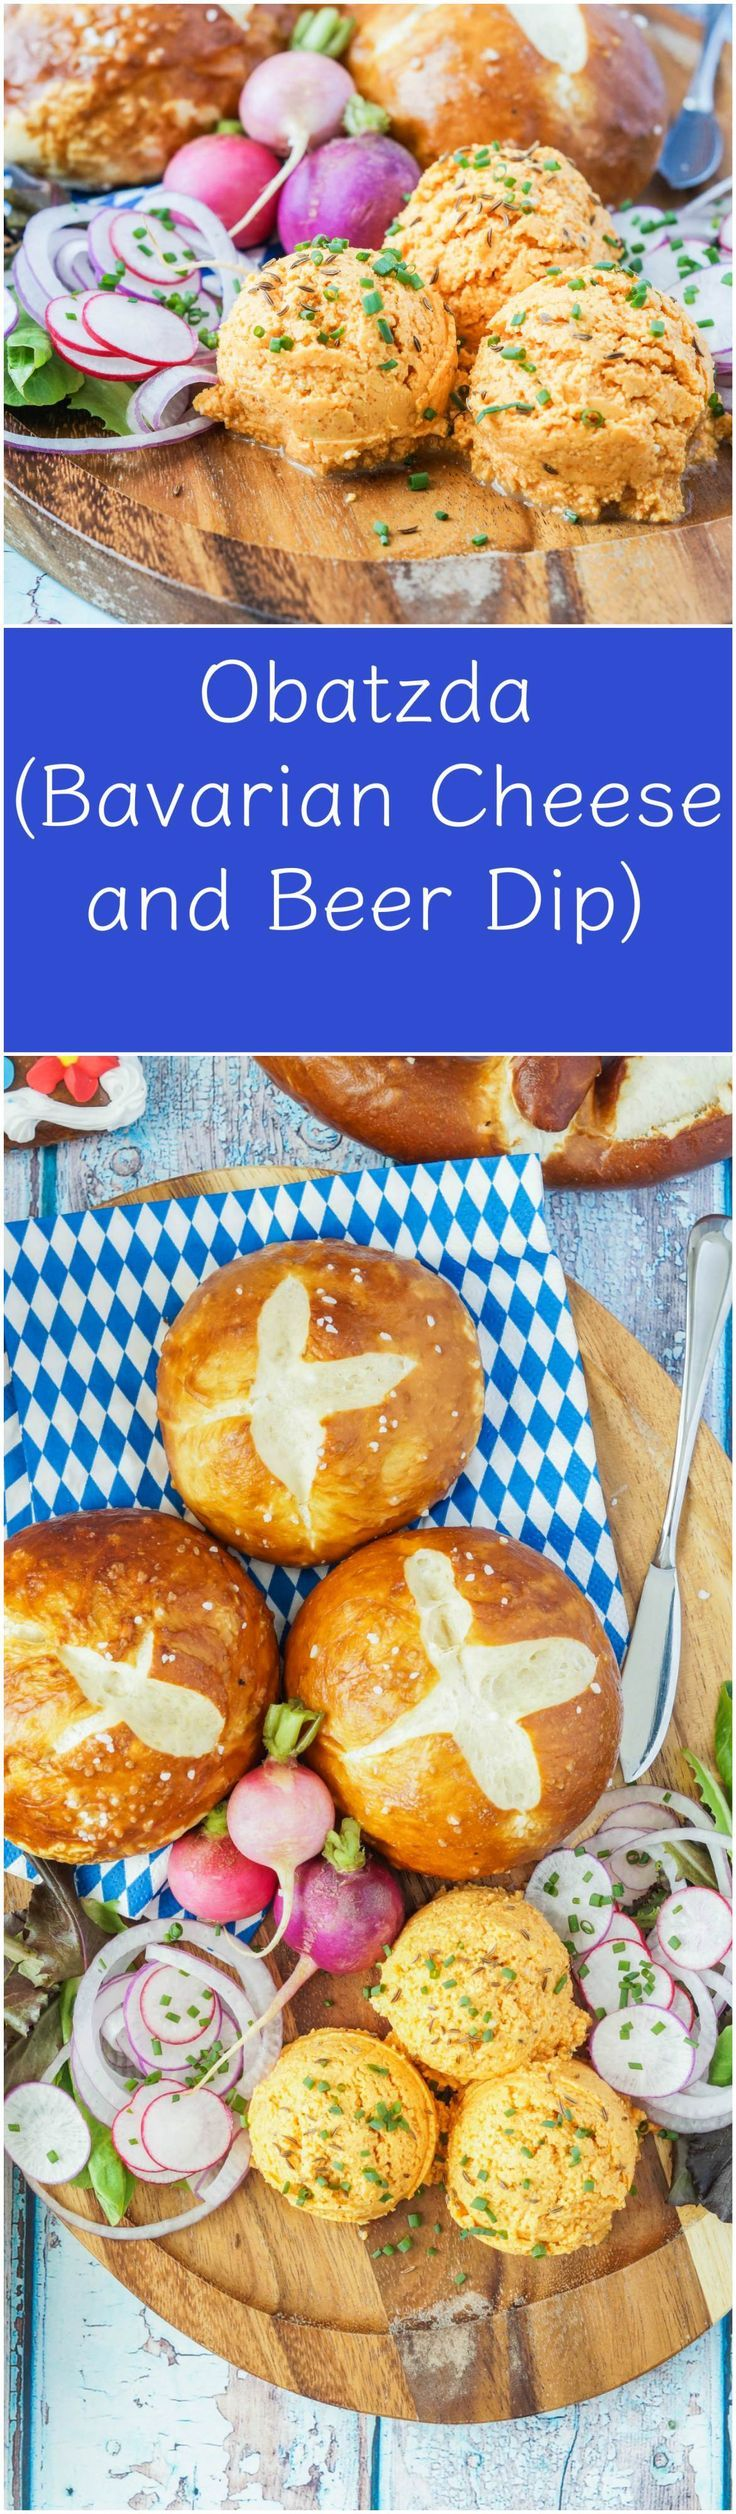 Obatzda (Bavarian Cheese and Beer Dip)  #Oktoberfest #Obatzda #Bavaria #Bavarian #German #Germany #beer #cheese #appetizer #recipe